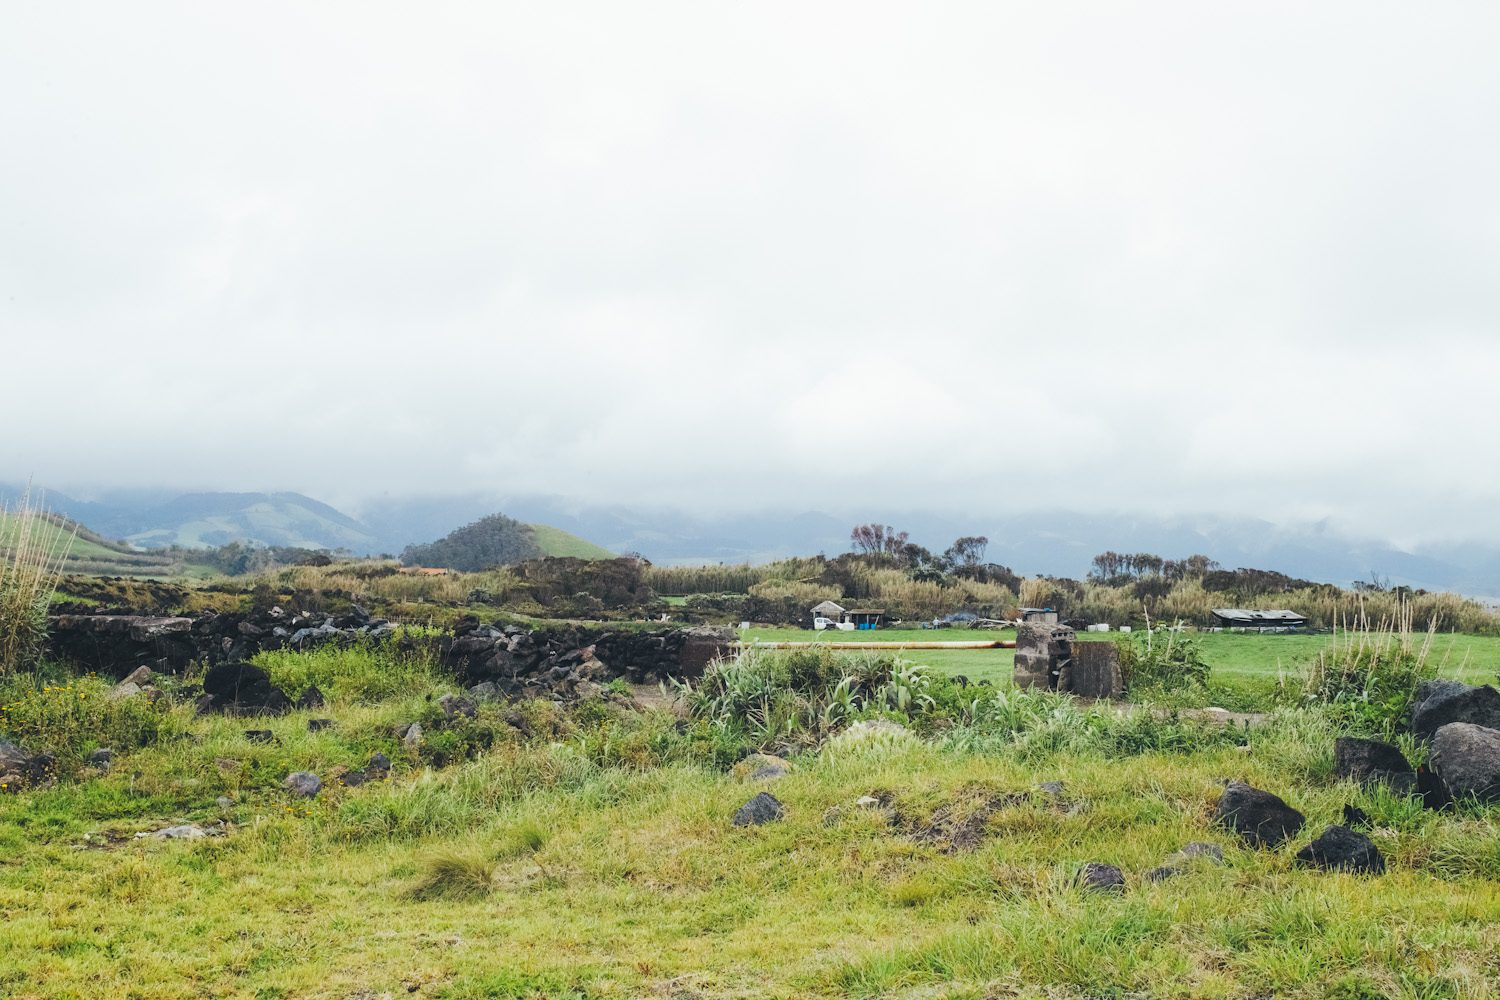 panorama_landscapes_azores_thevoyageur-27